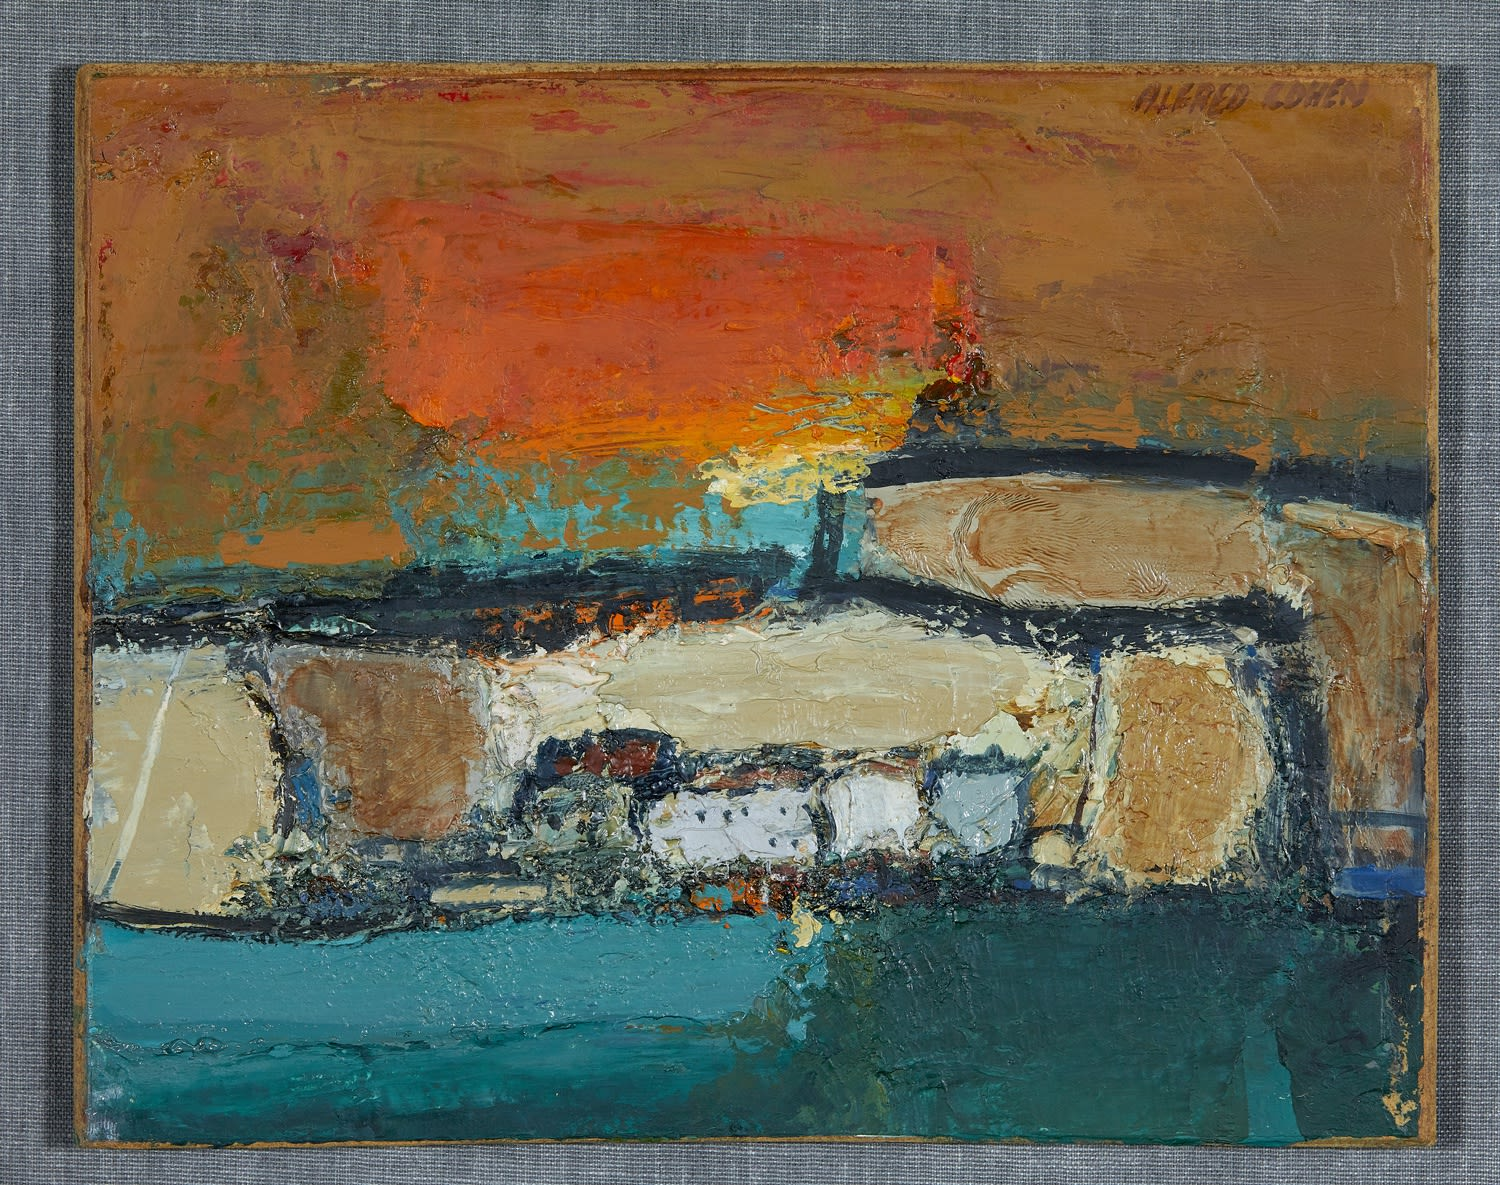 Alfred Cohen (1920-2001) Coastal Picture 1966 Oil on board 20.3 x 25.4 cm Collection: Max Saunders © Estate of Alfred Cohen 2020